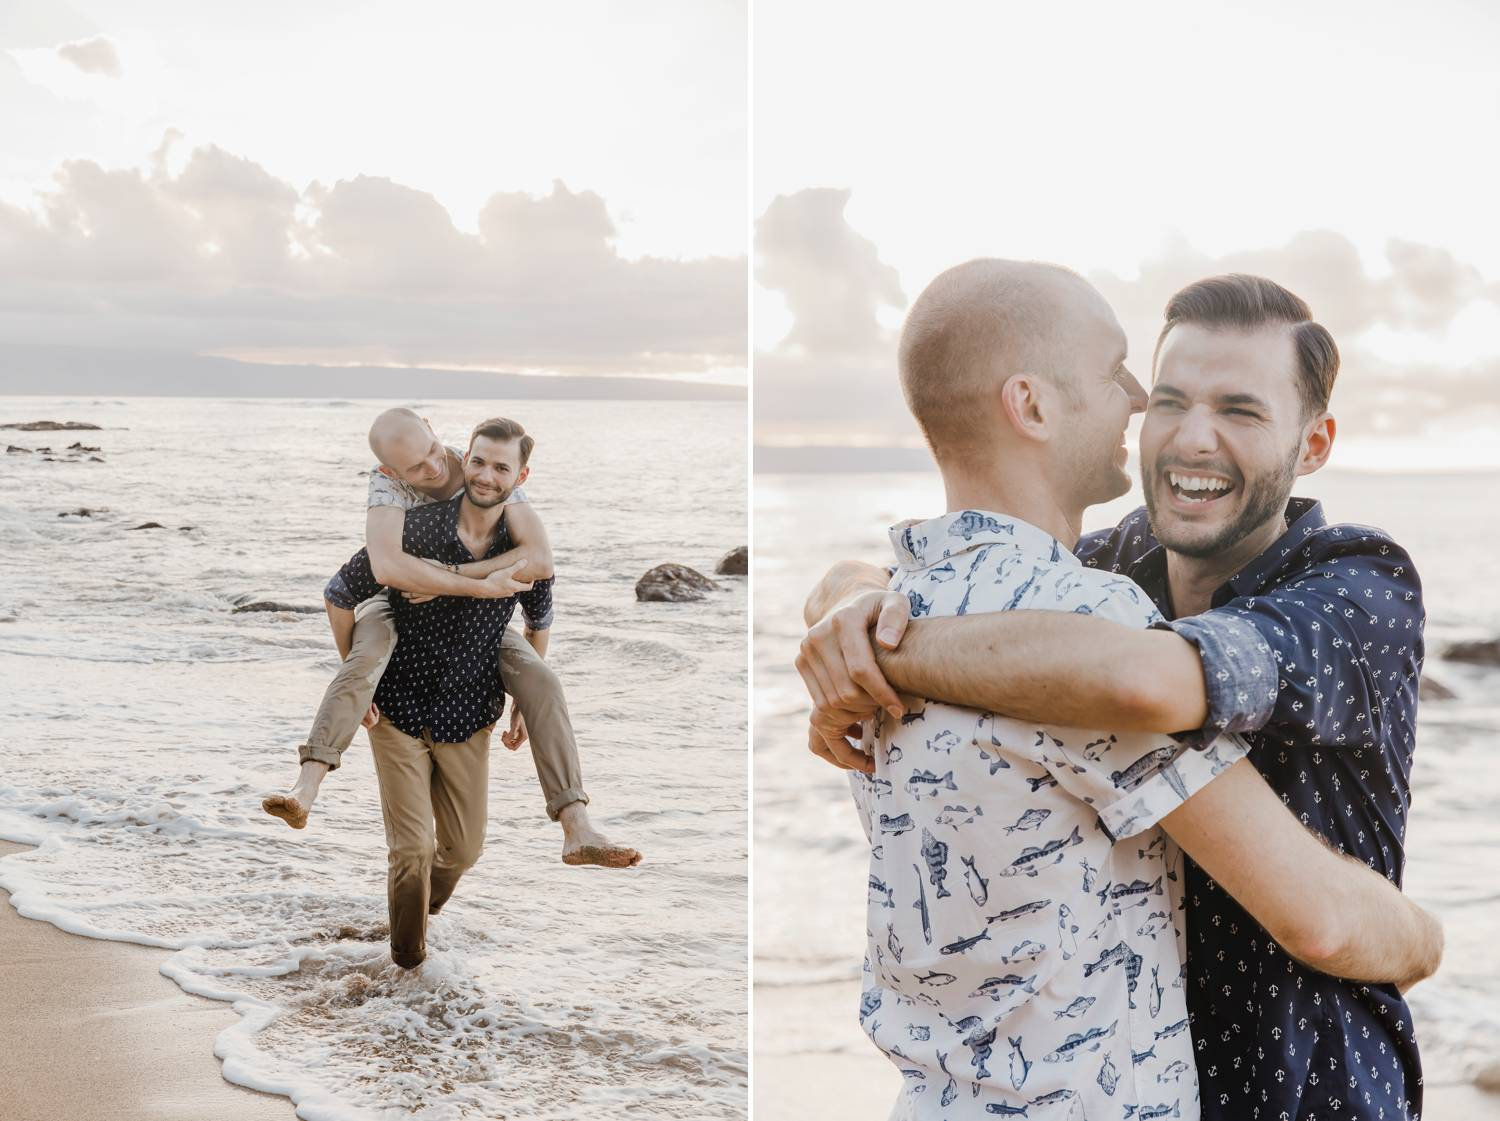 Two men play in the surf at sunset, giving one another piggy back rides and hugging one another close.